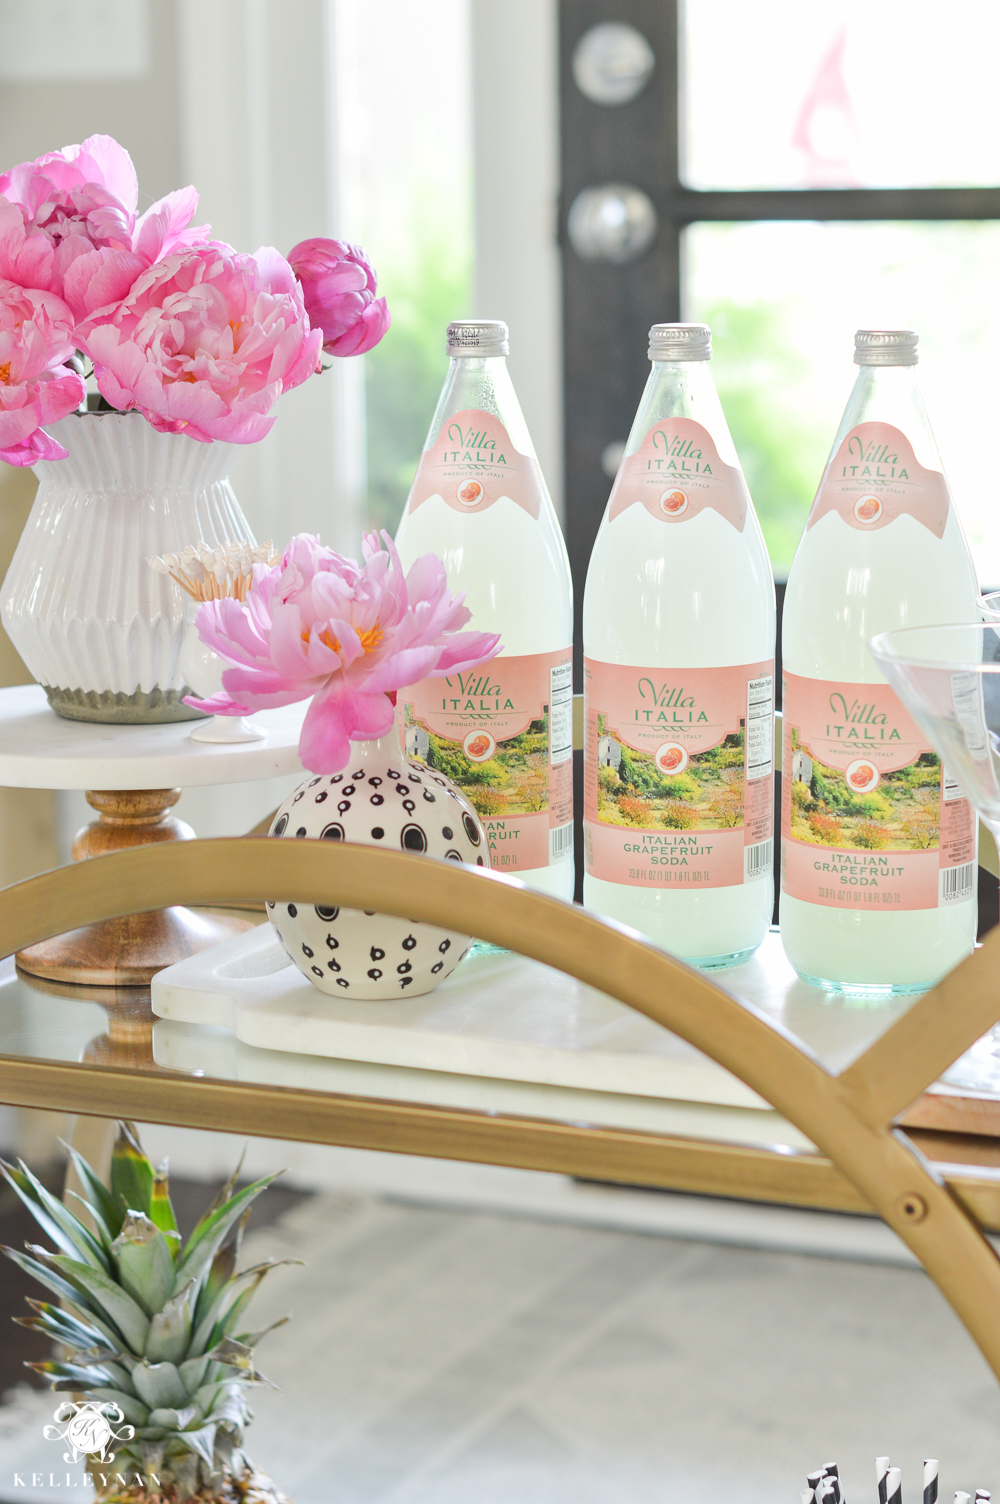 Easy Tropical Bar Cart with Peonies and Pineapple- inexpensive decor